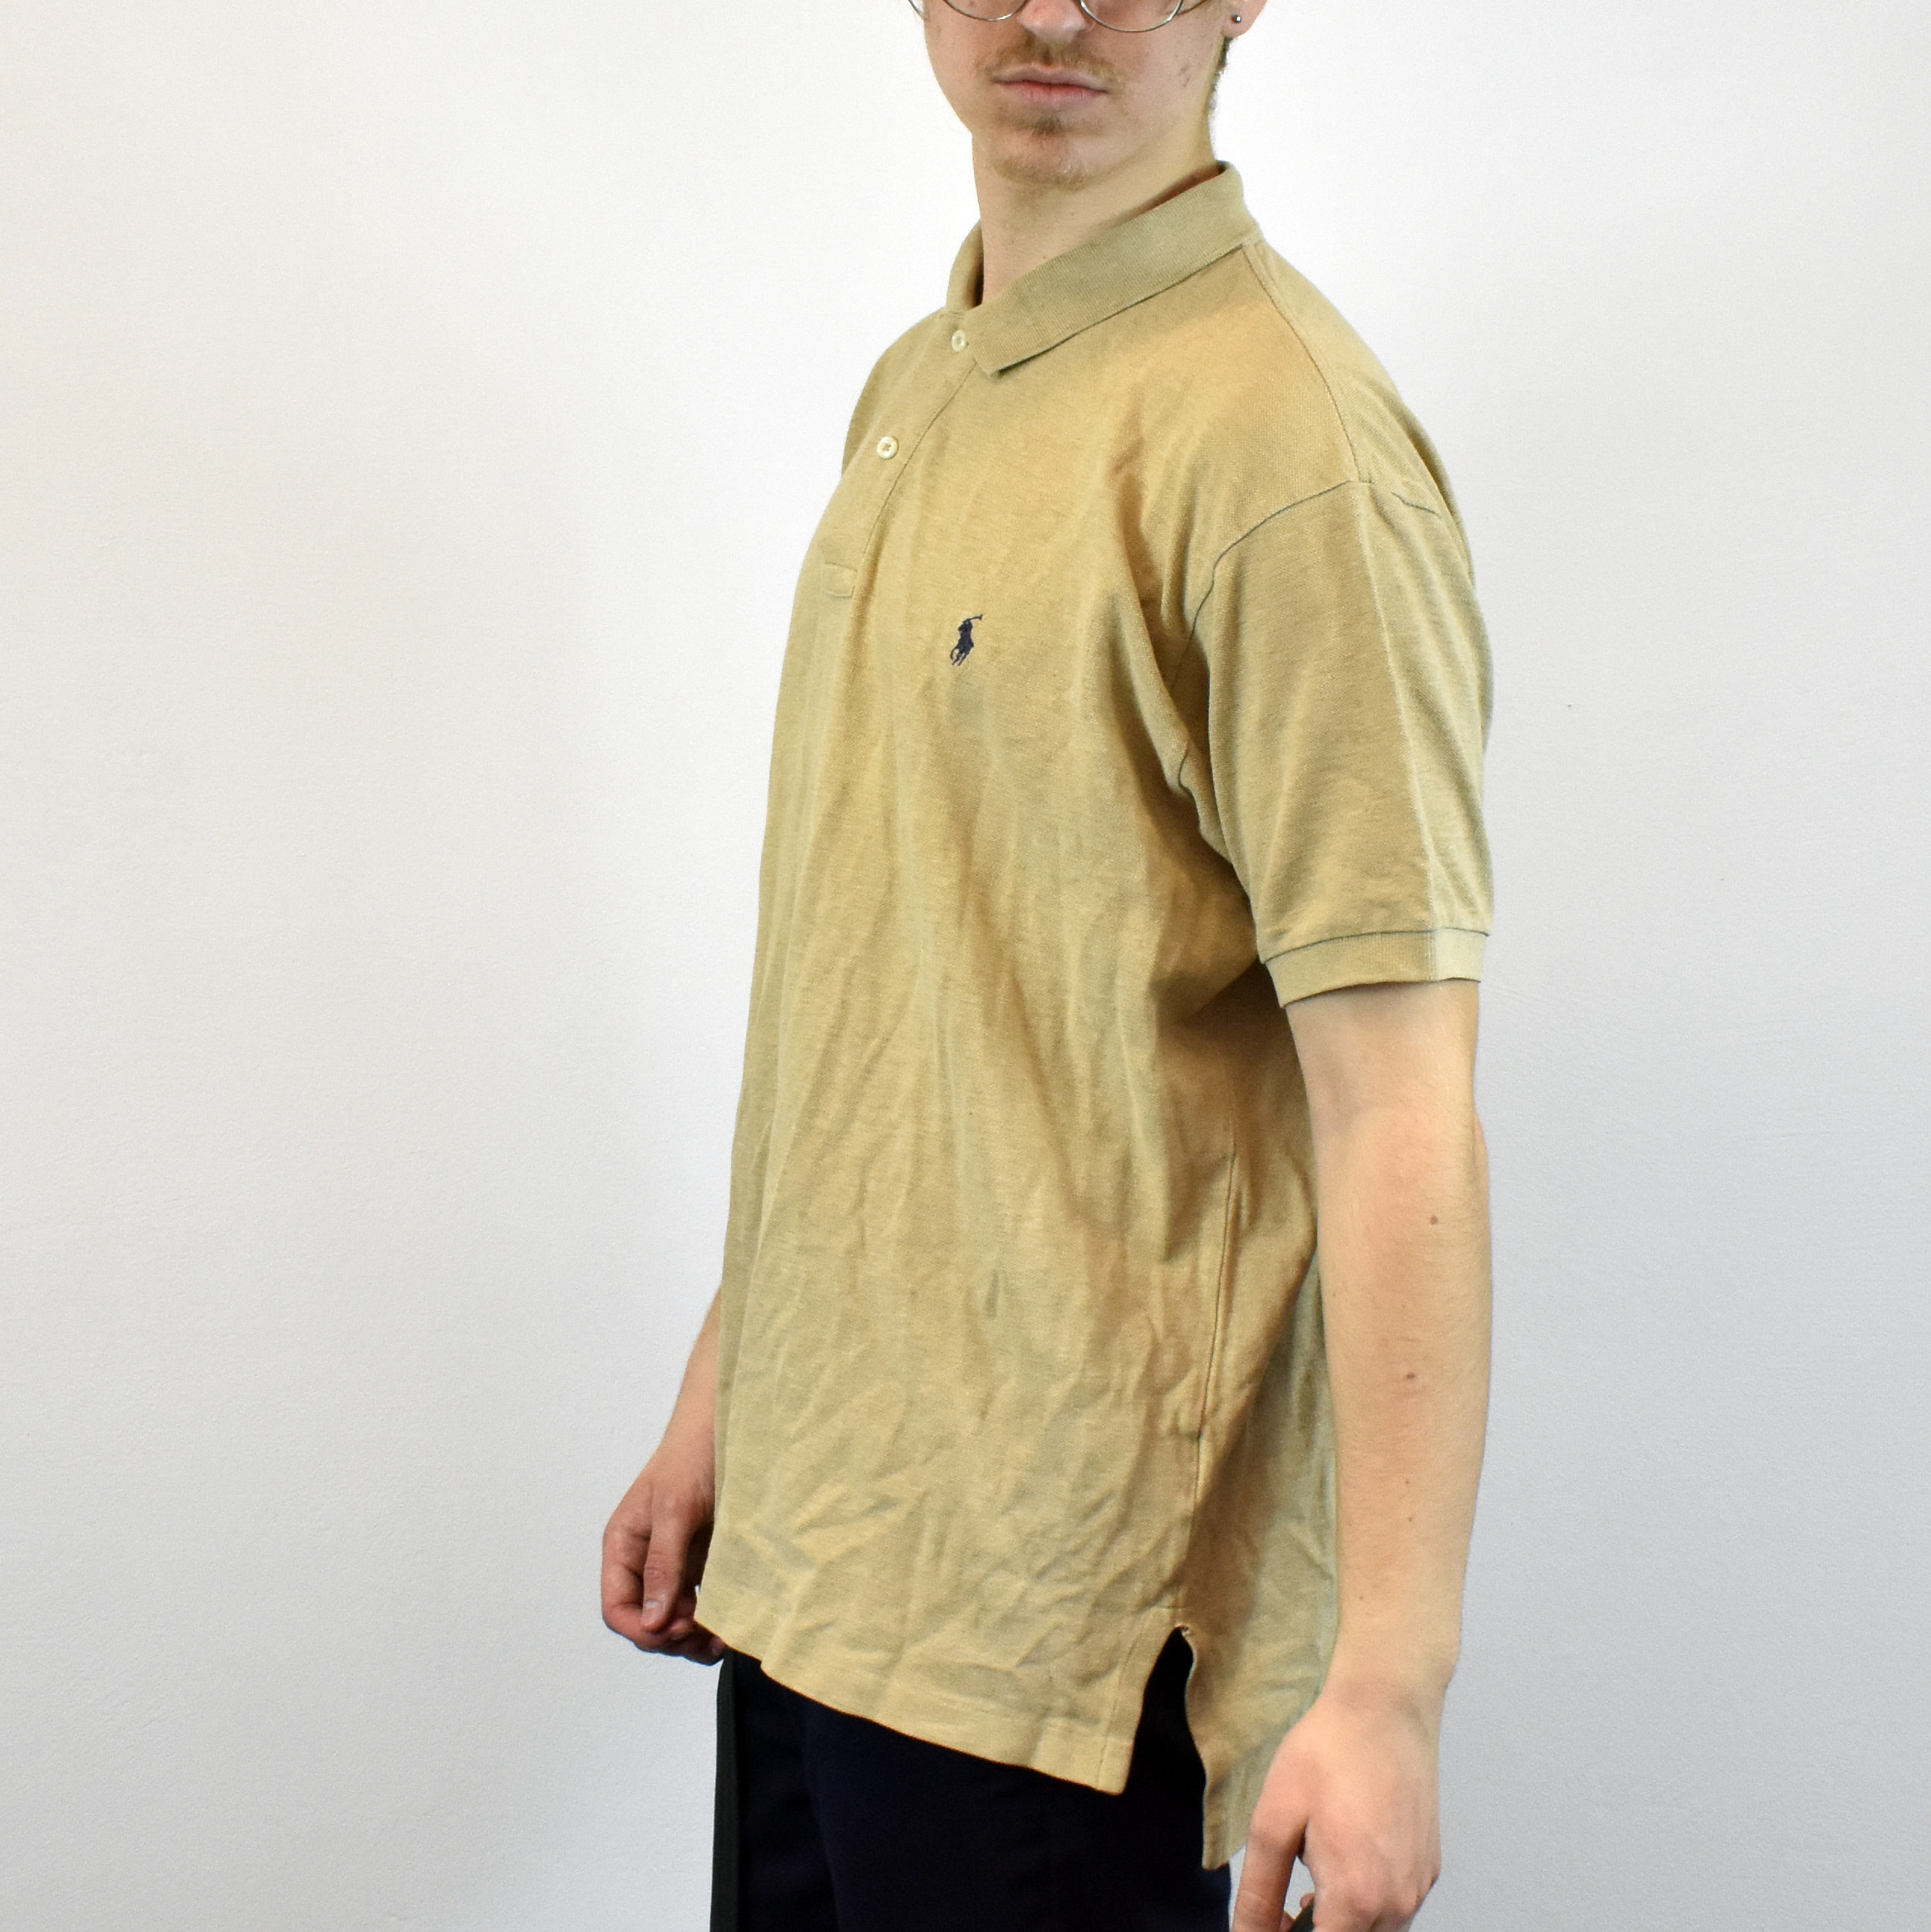 Unisex Vintage Ralph Lauren polo shirt in beige has a logo on the front size L